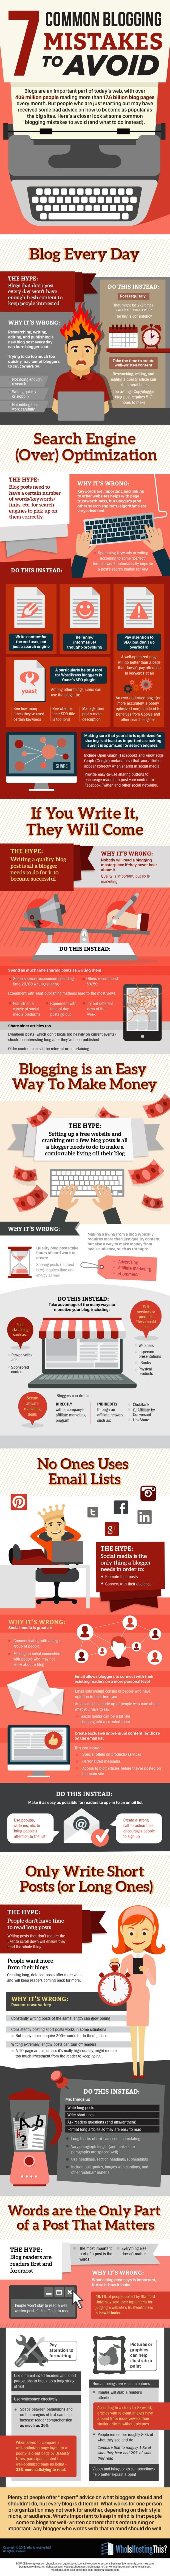 7 Common Blogging Mistakes to Avoid #infographic